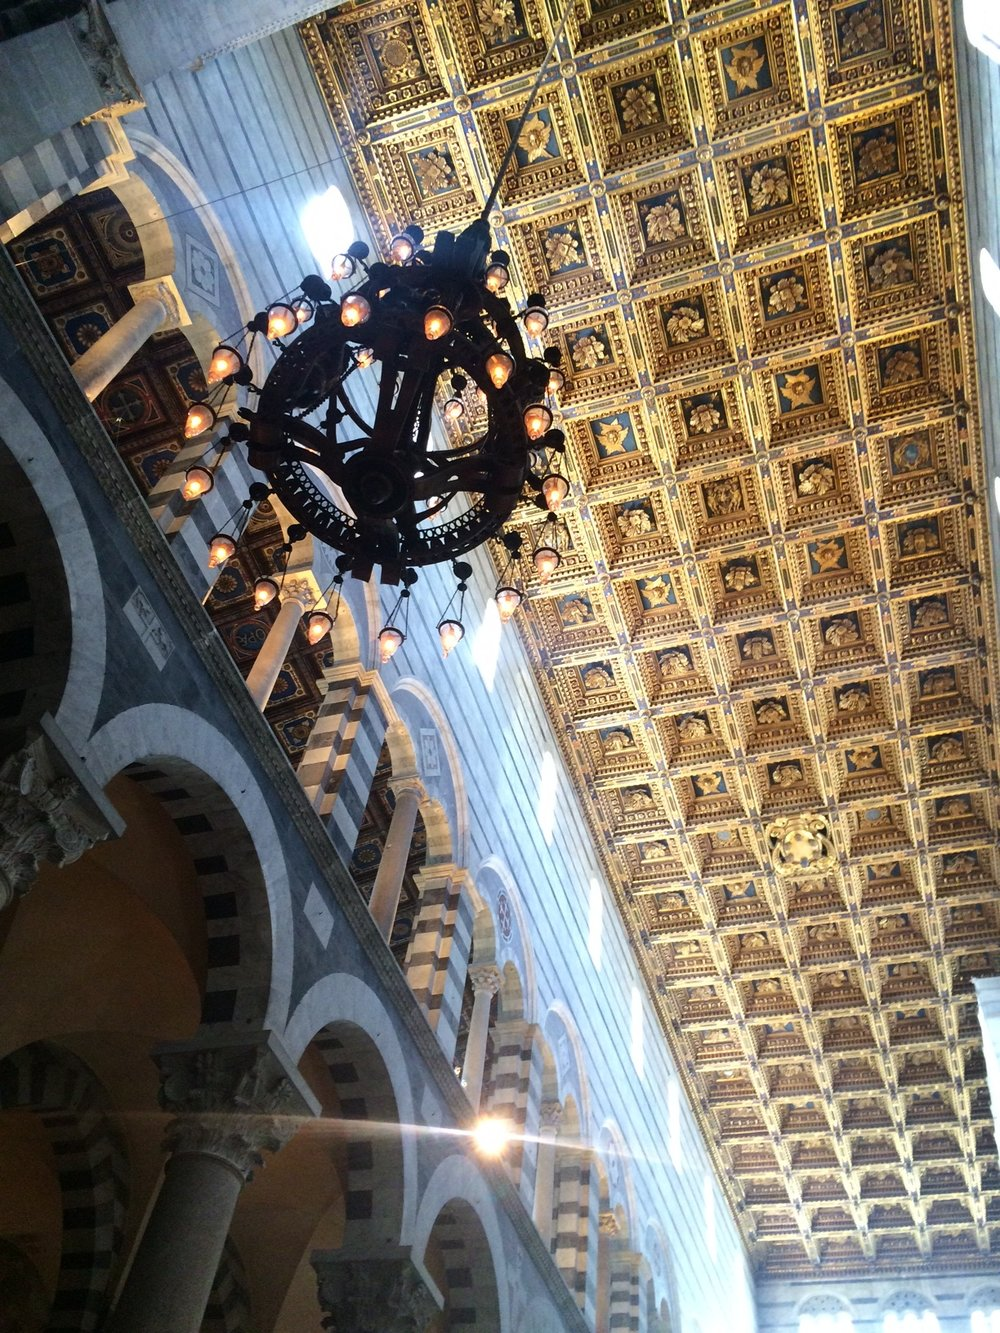 Inside the cathedral in Pisa.